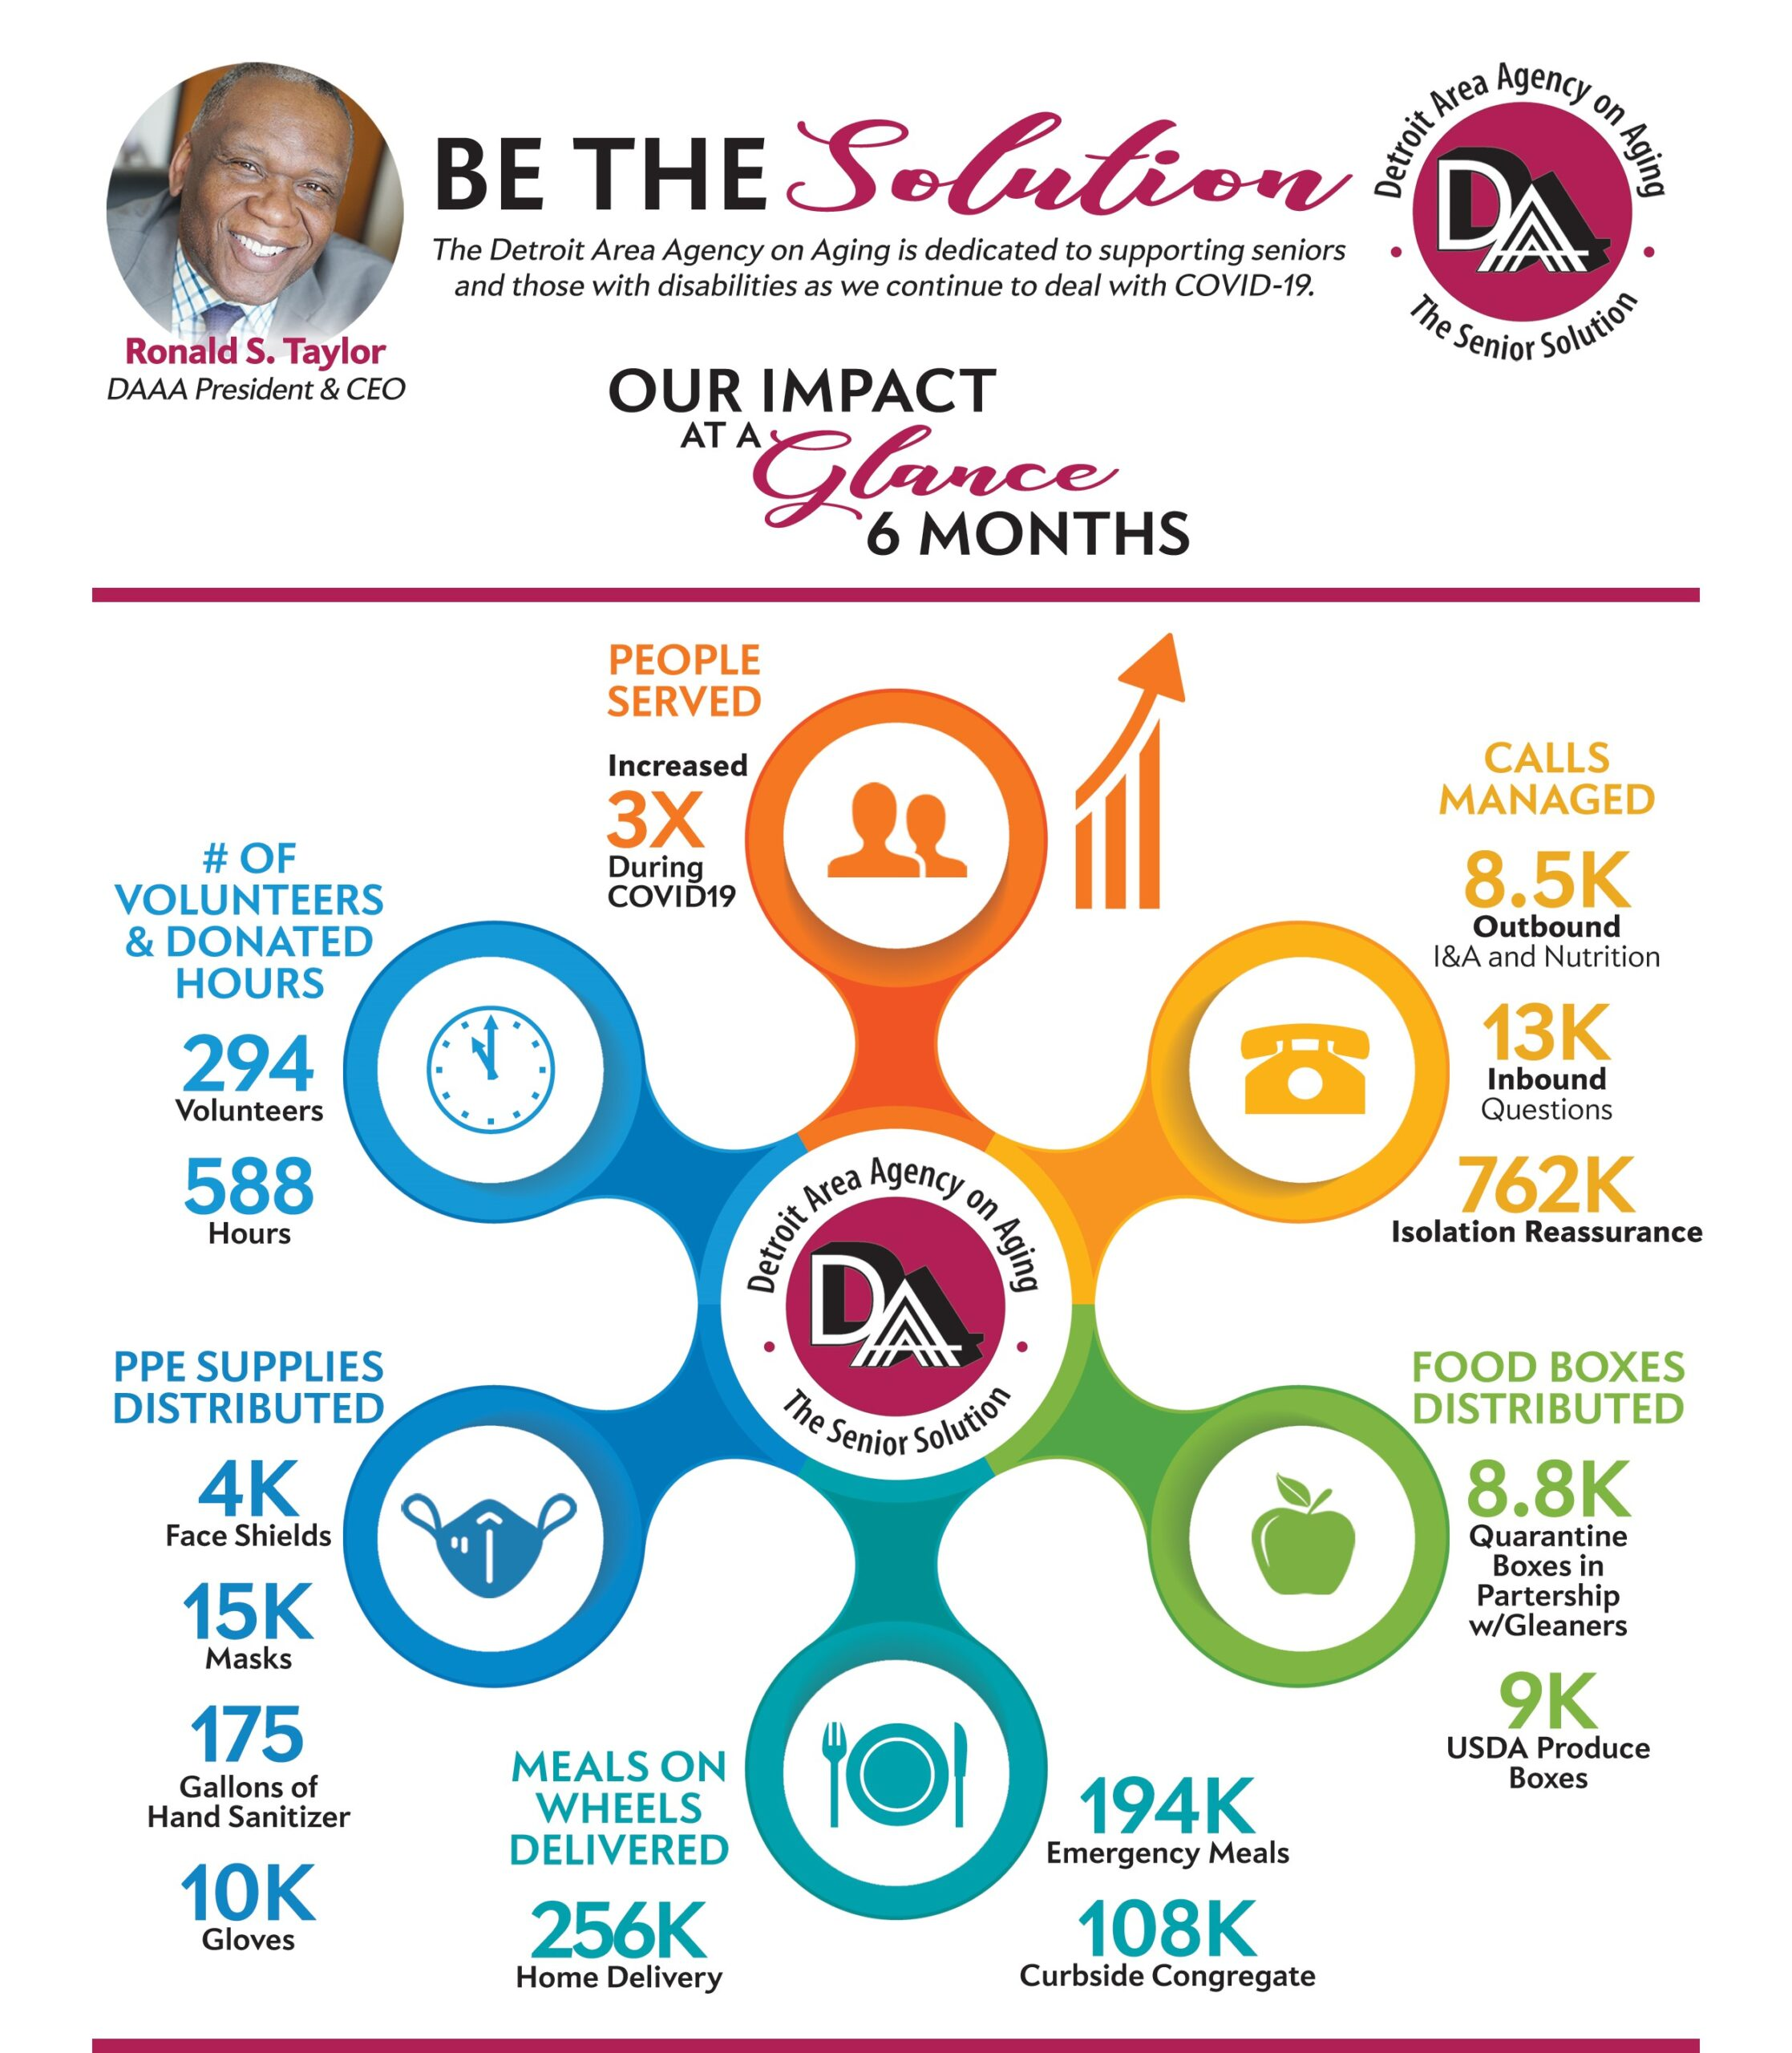 Be the Solution   Our Impact at a Glance in 6 Months   Detroit Area Agency on Aging